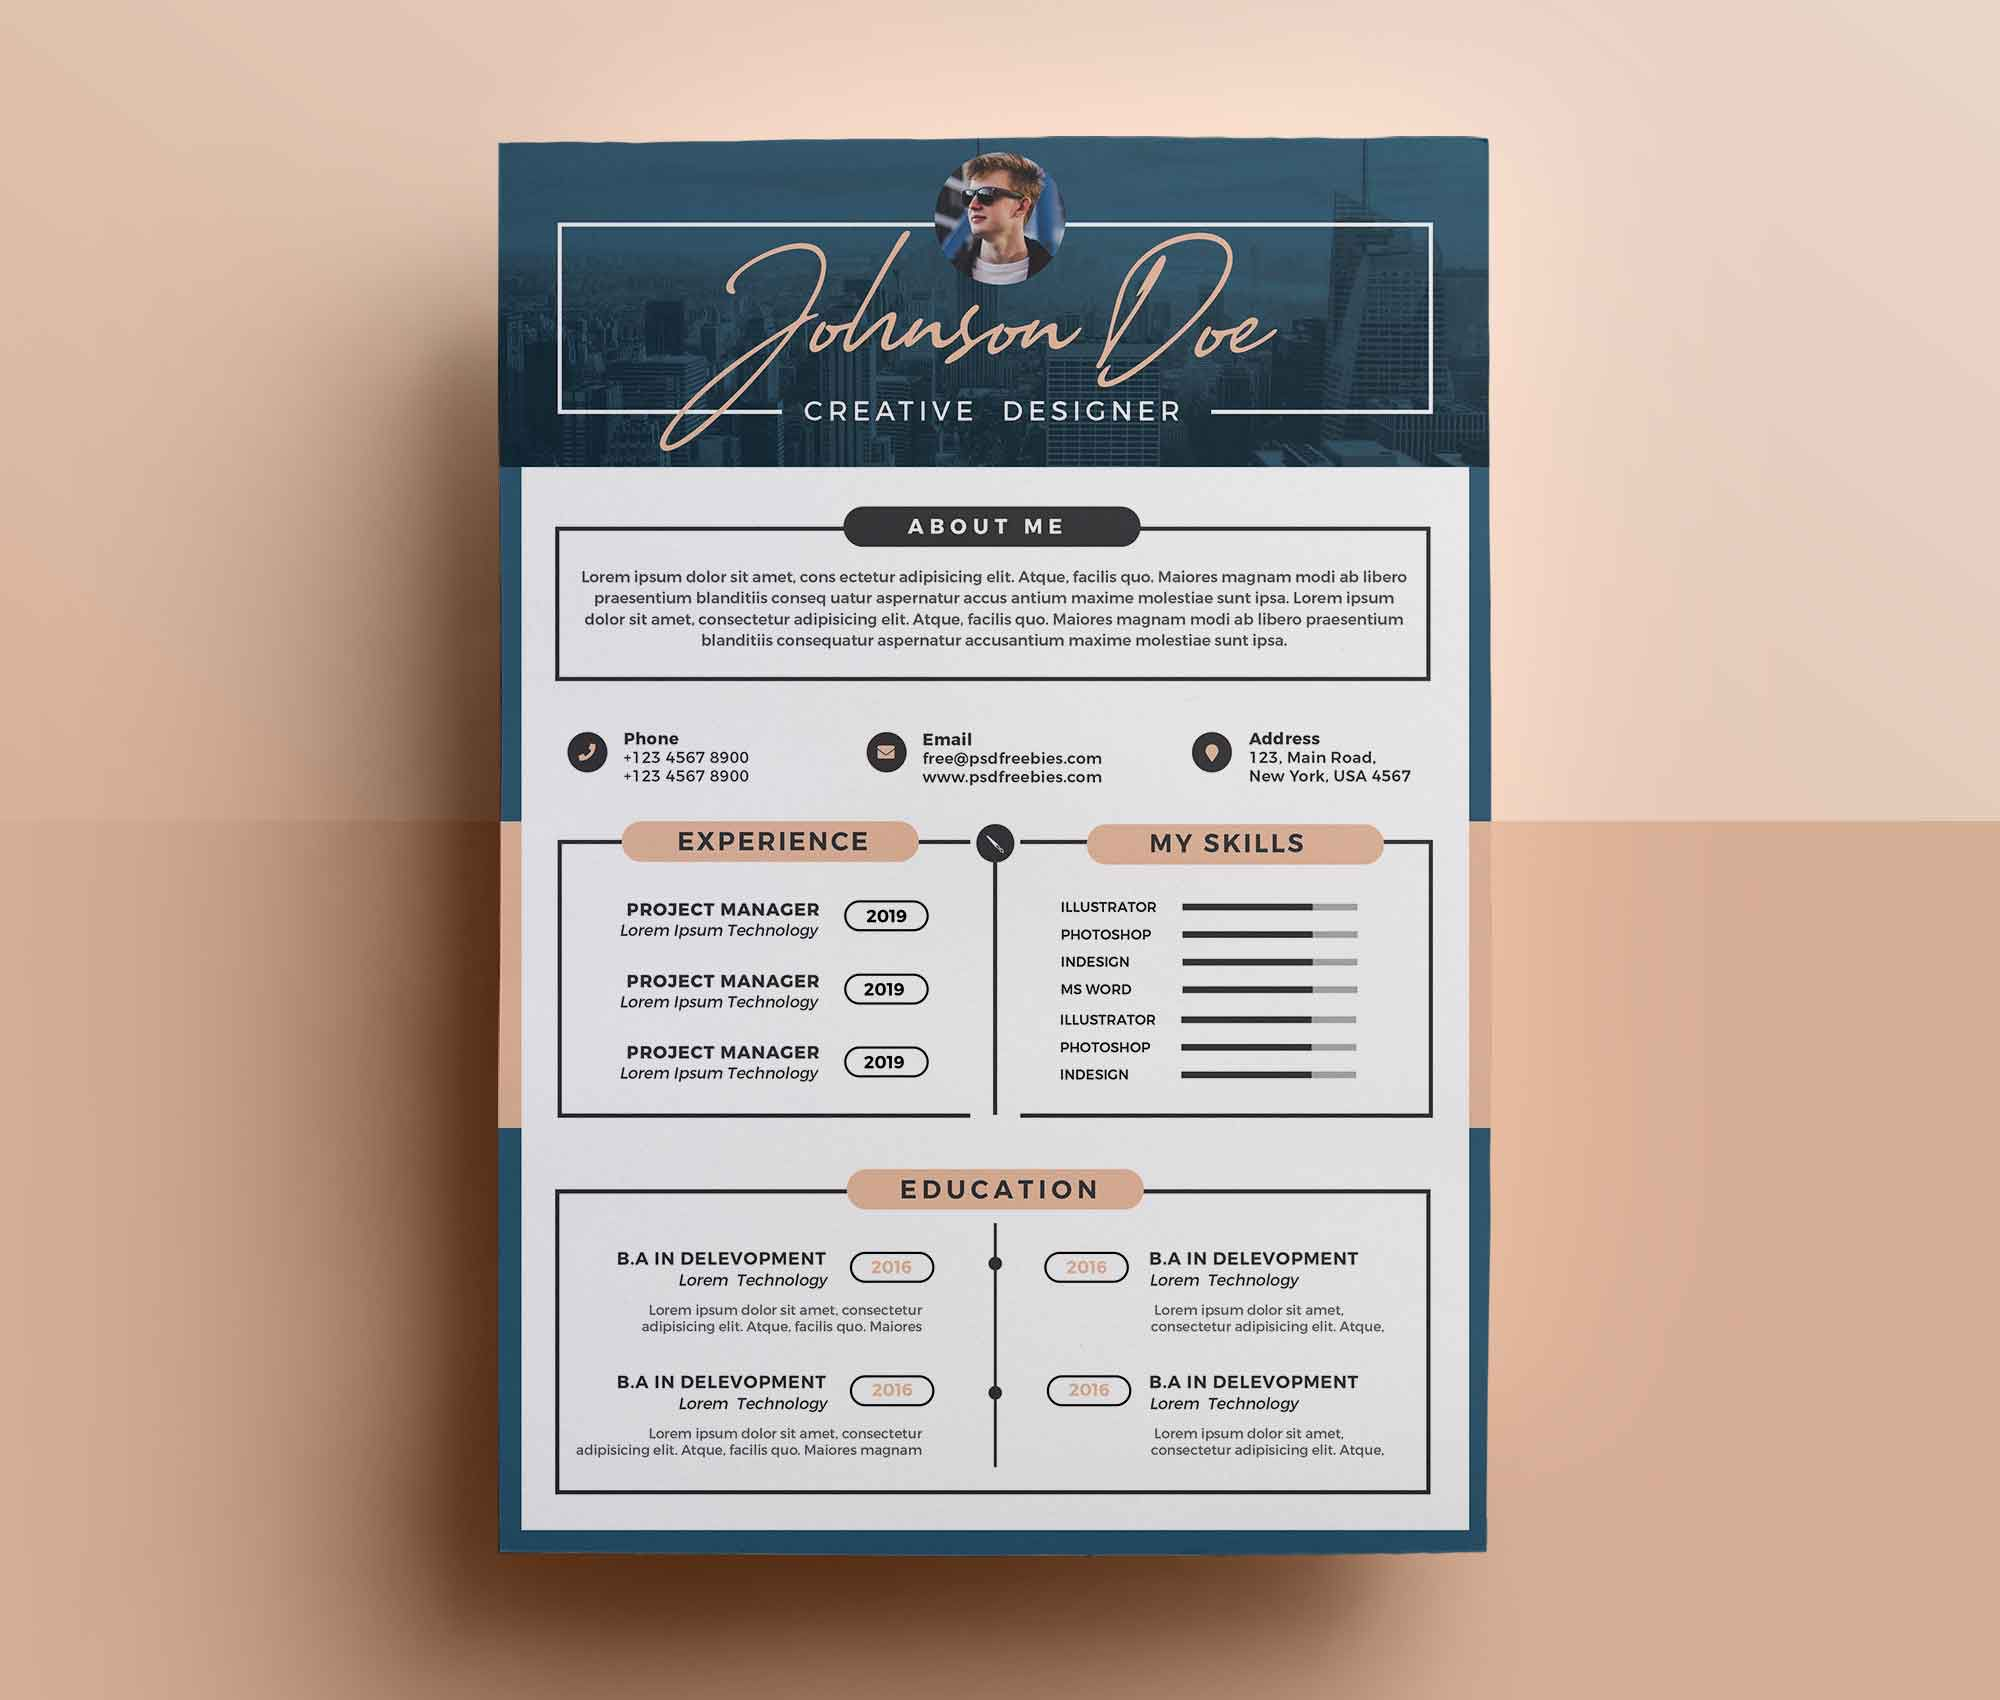 007 Fascinating Psd Cv Template Free Download Concept  2020 Graphic Designer PhotoshopFull